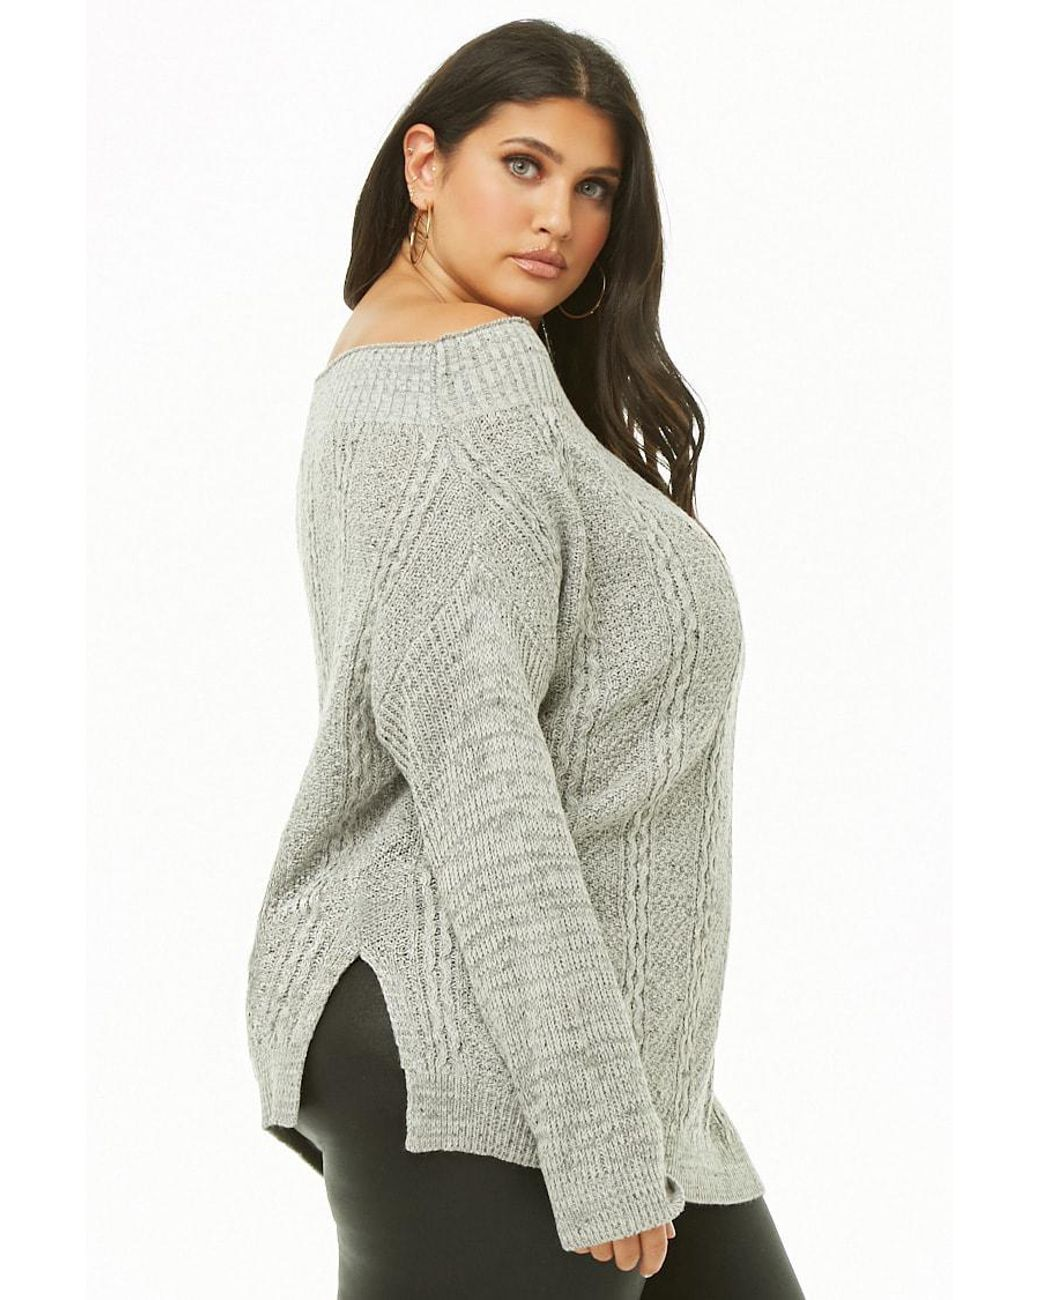 03294d489 Forever 21 Women s Plus Size Off-the-shoulder Cable-knit Jumper Sweater in  Gray - Lyst